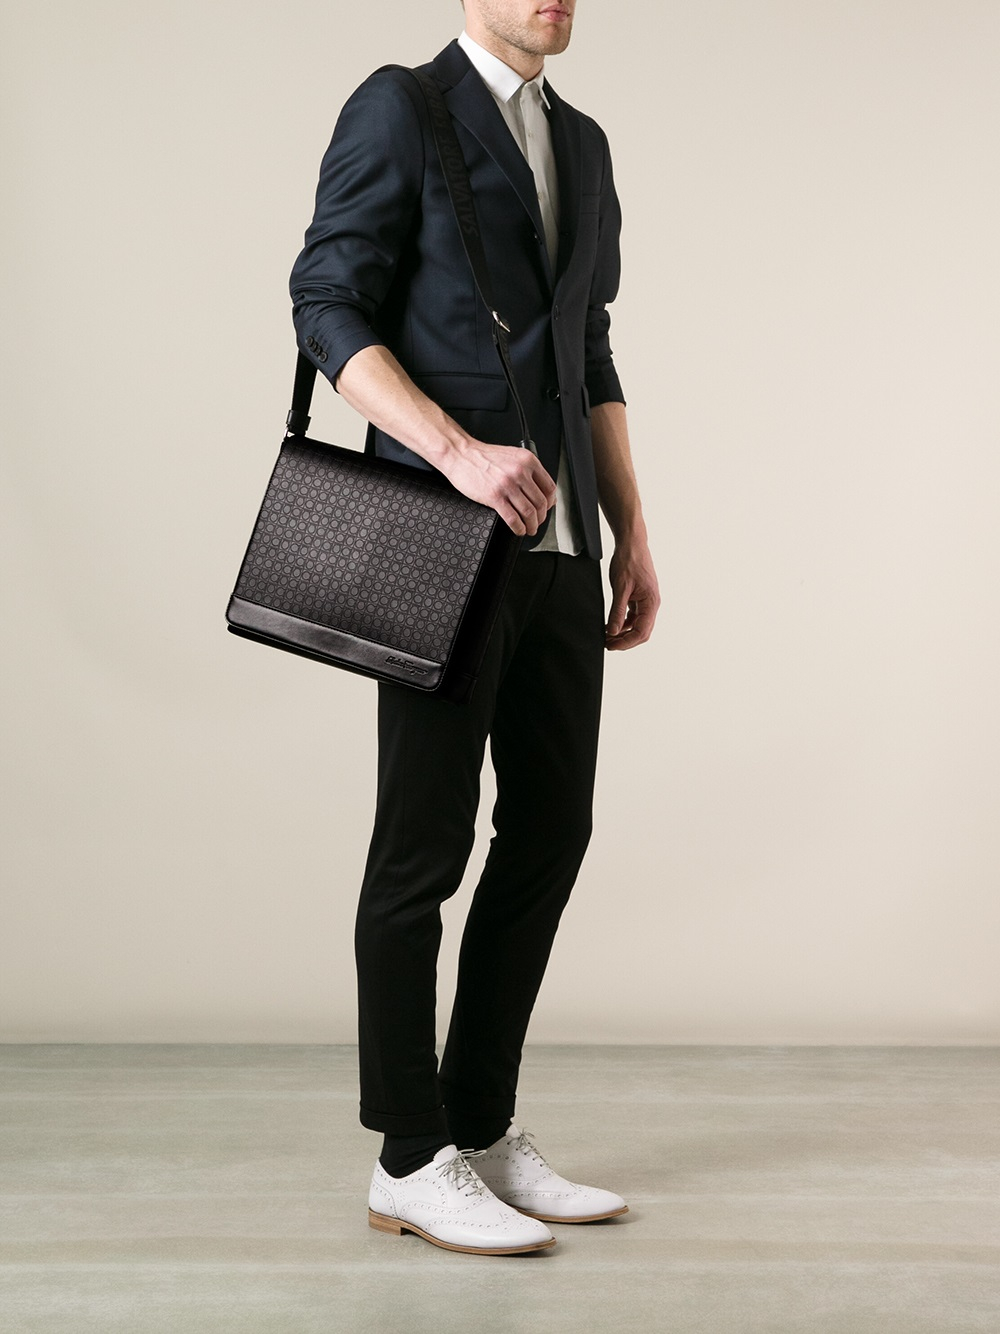 Lyst - Ferragamo Messenger Bag in Black for Men